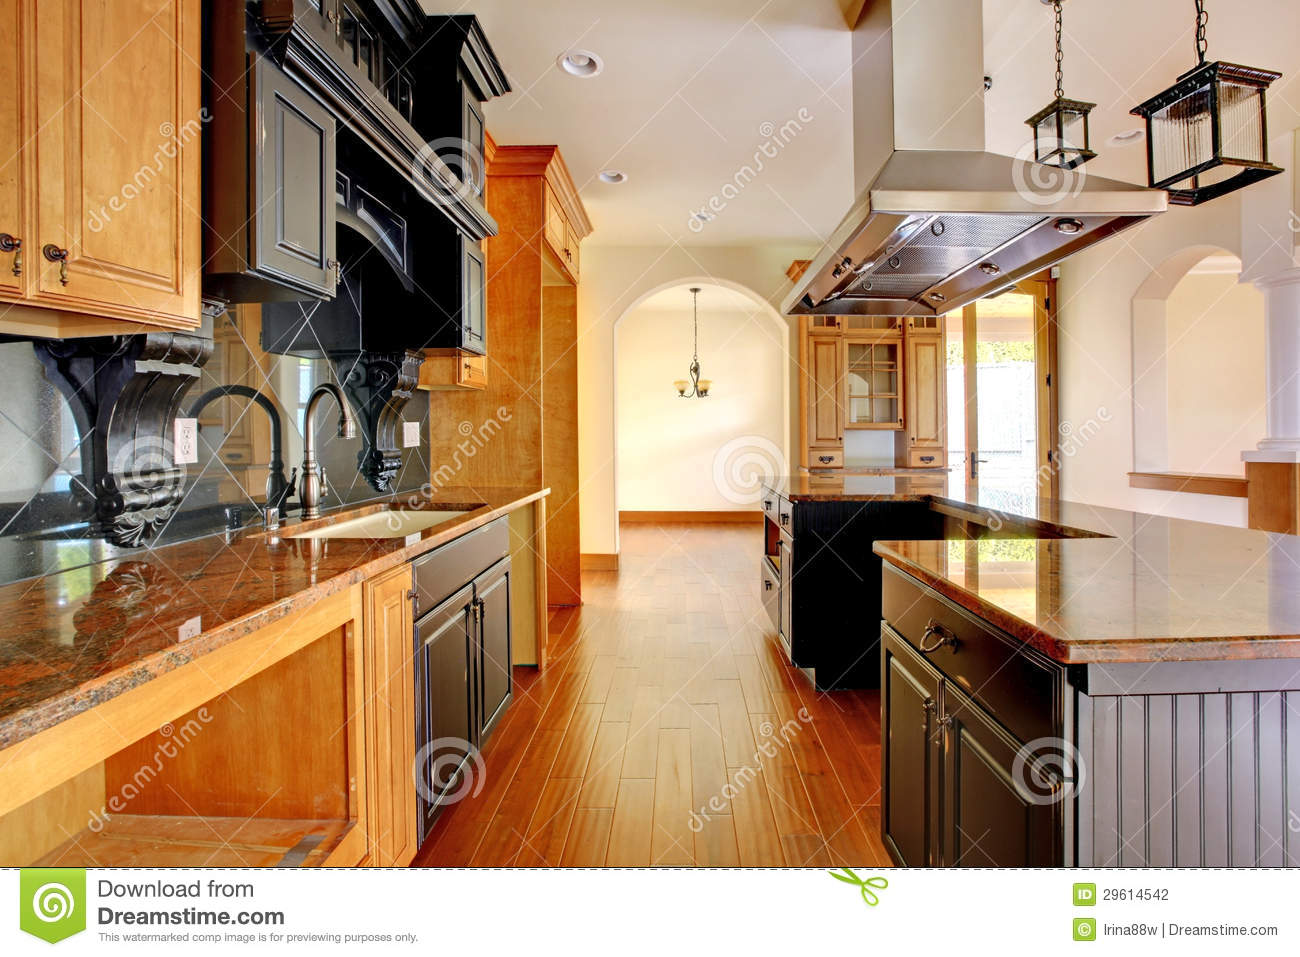 new construction luxury home interior kitchen with beautiful